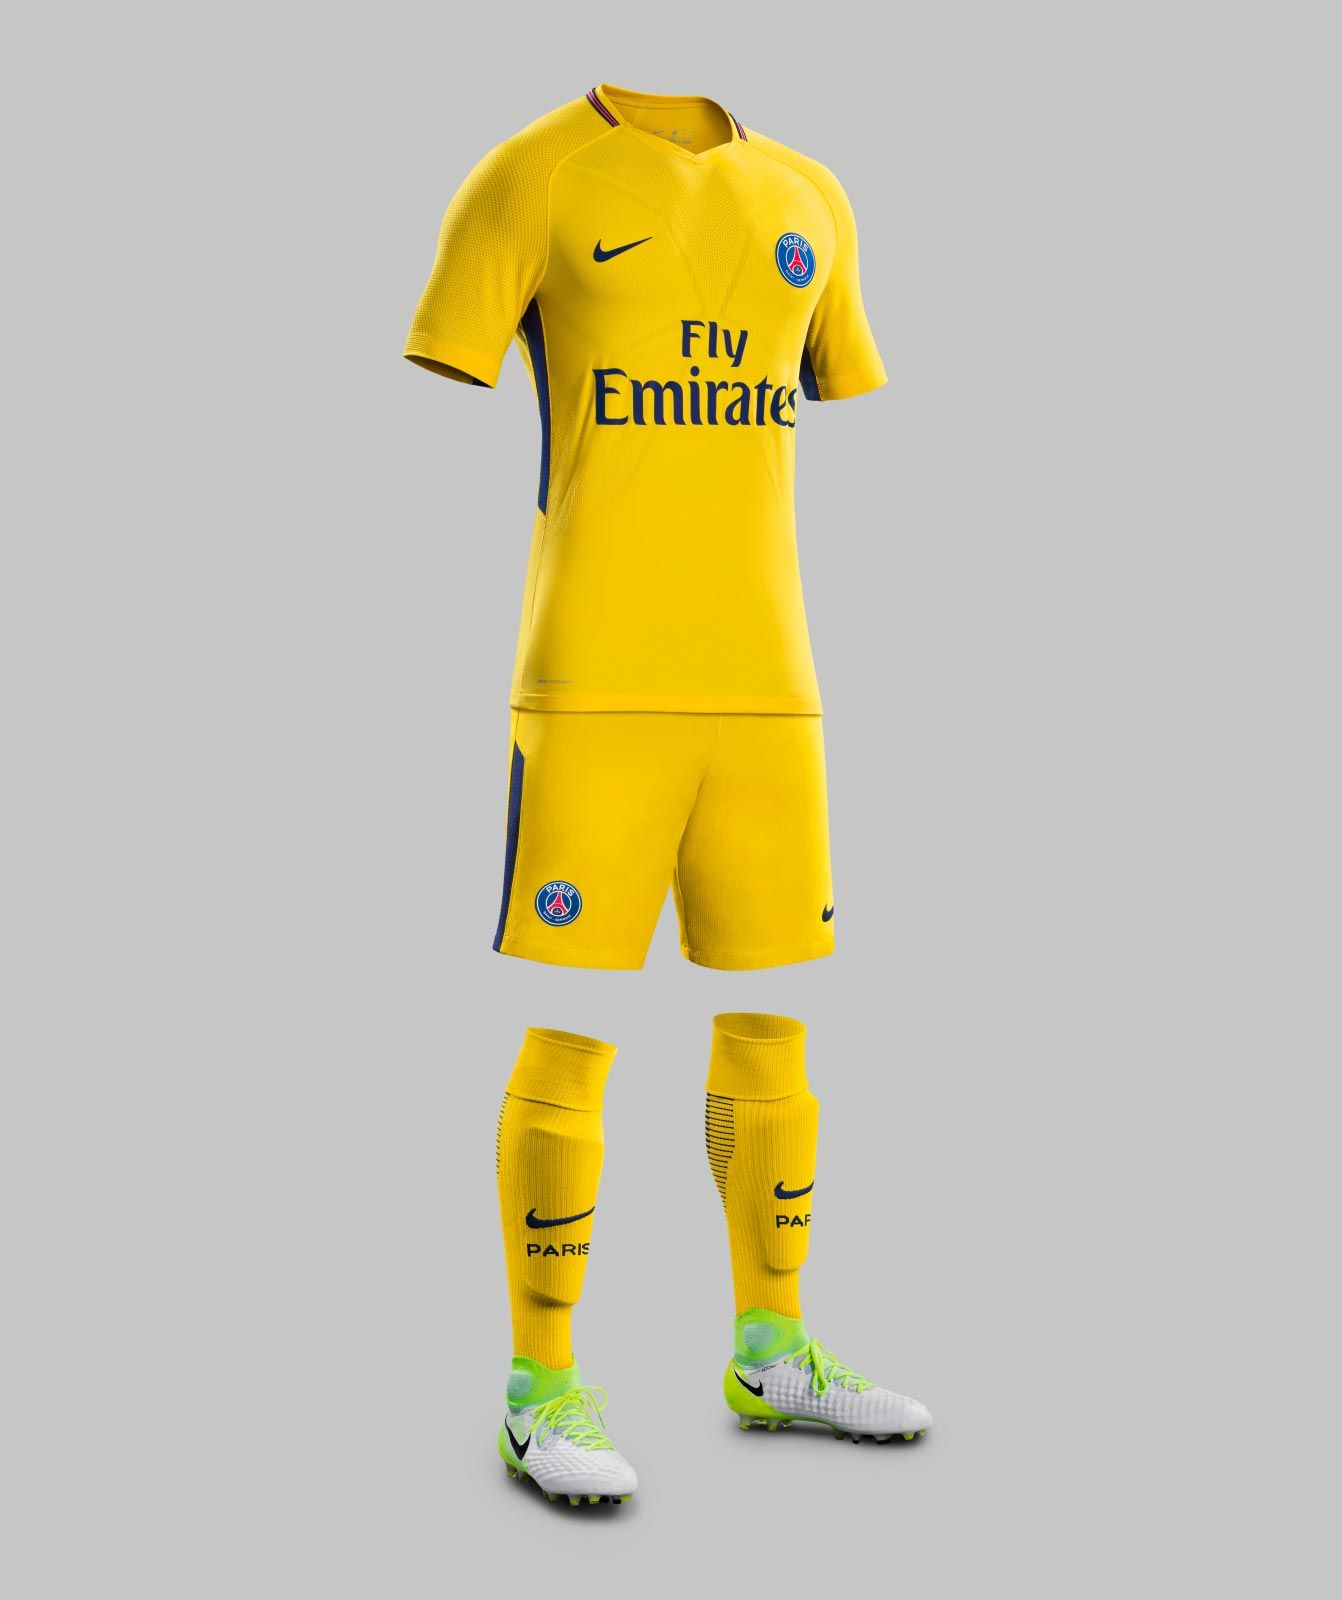 6e7eb4417 The new Paris Saint-Germain 2017-2018 away jersey is yellow, to pay homage  to the club's Brazilian heritage.